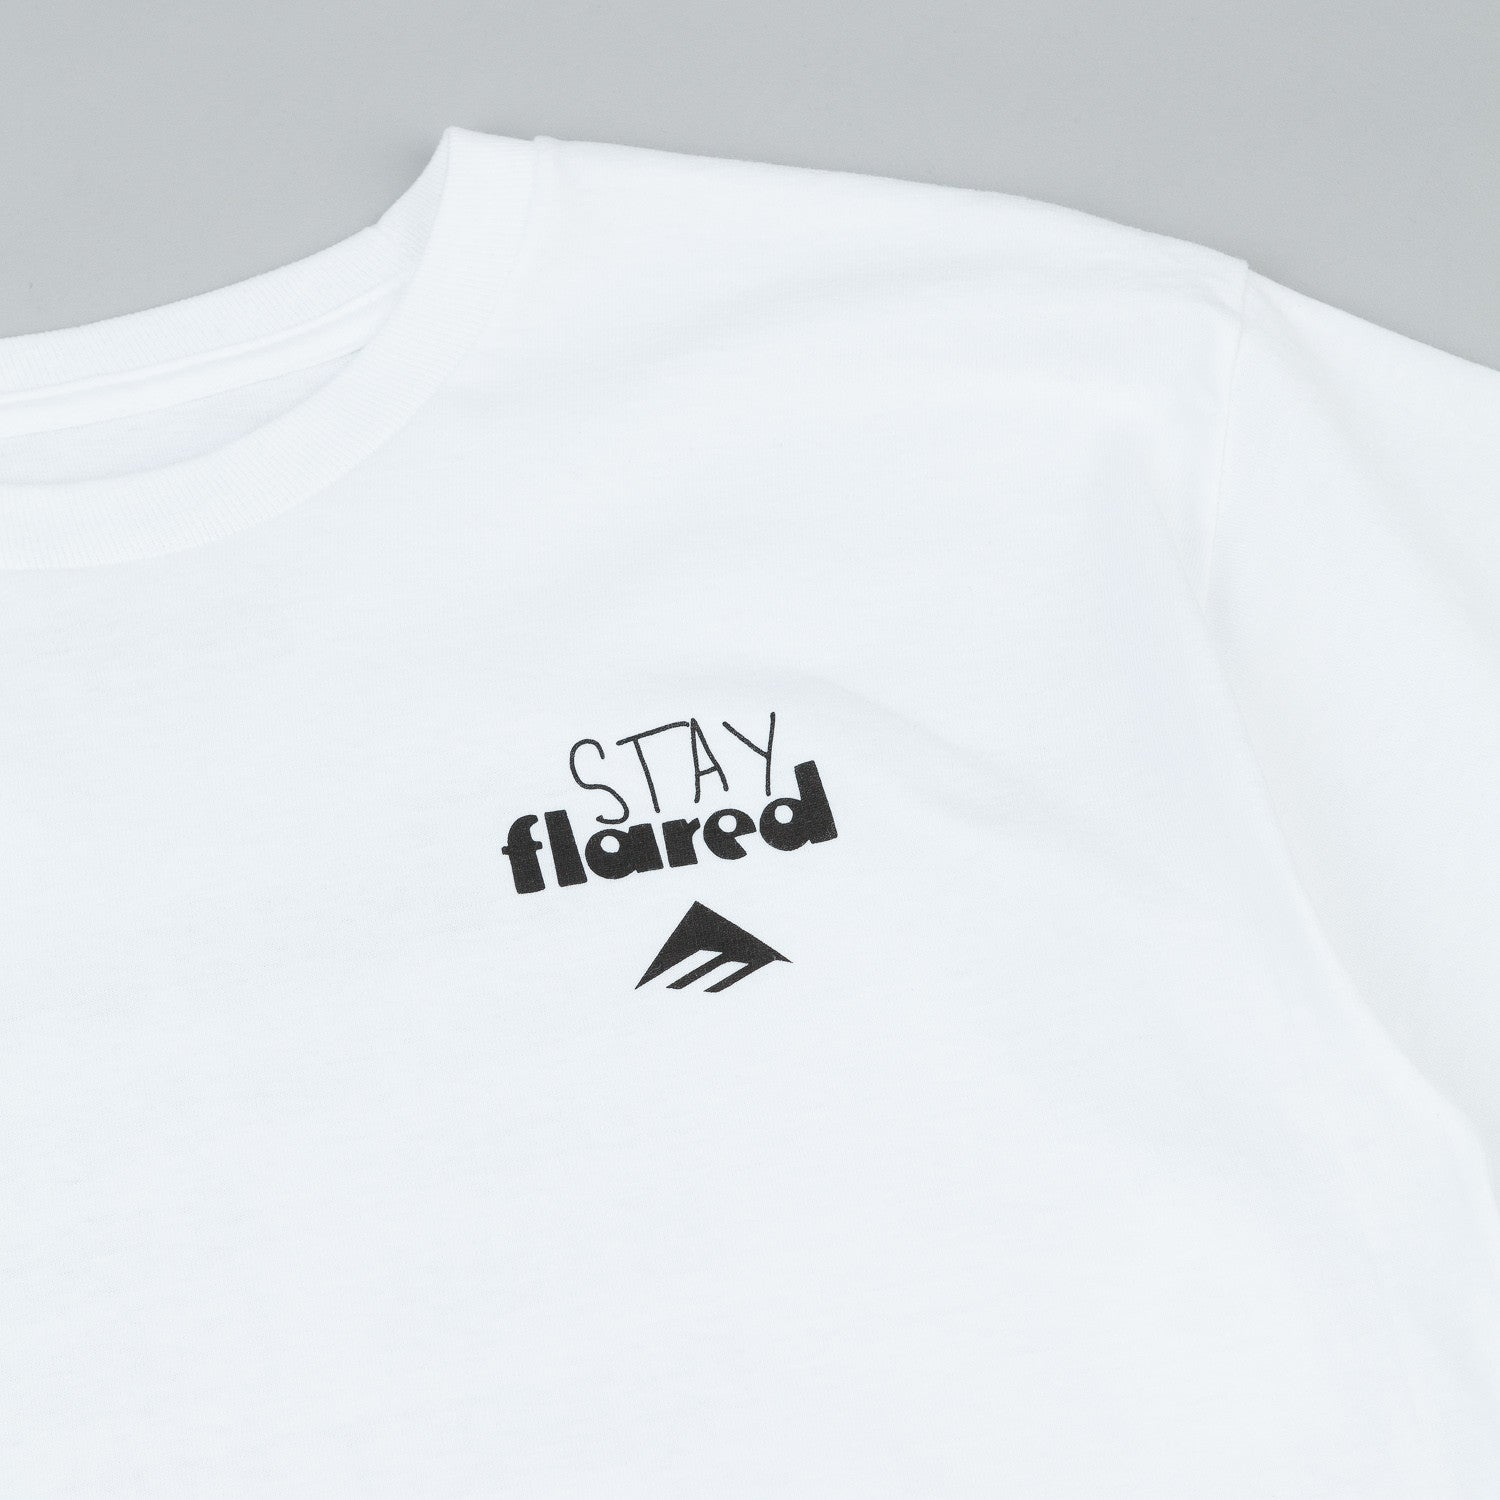 Emerica X Stay Flared T-Shirt - White